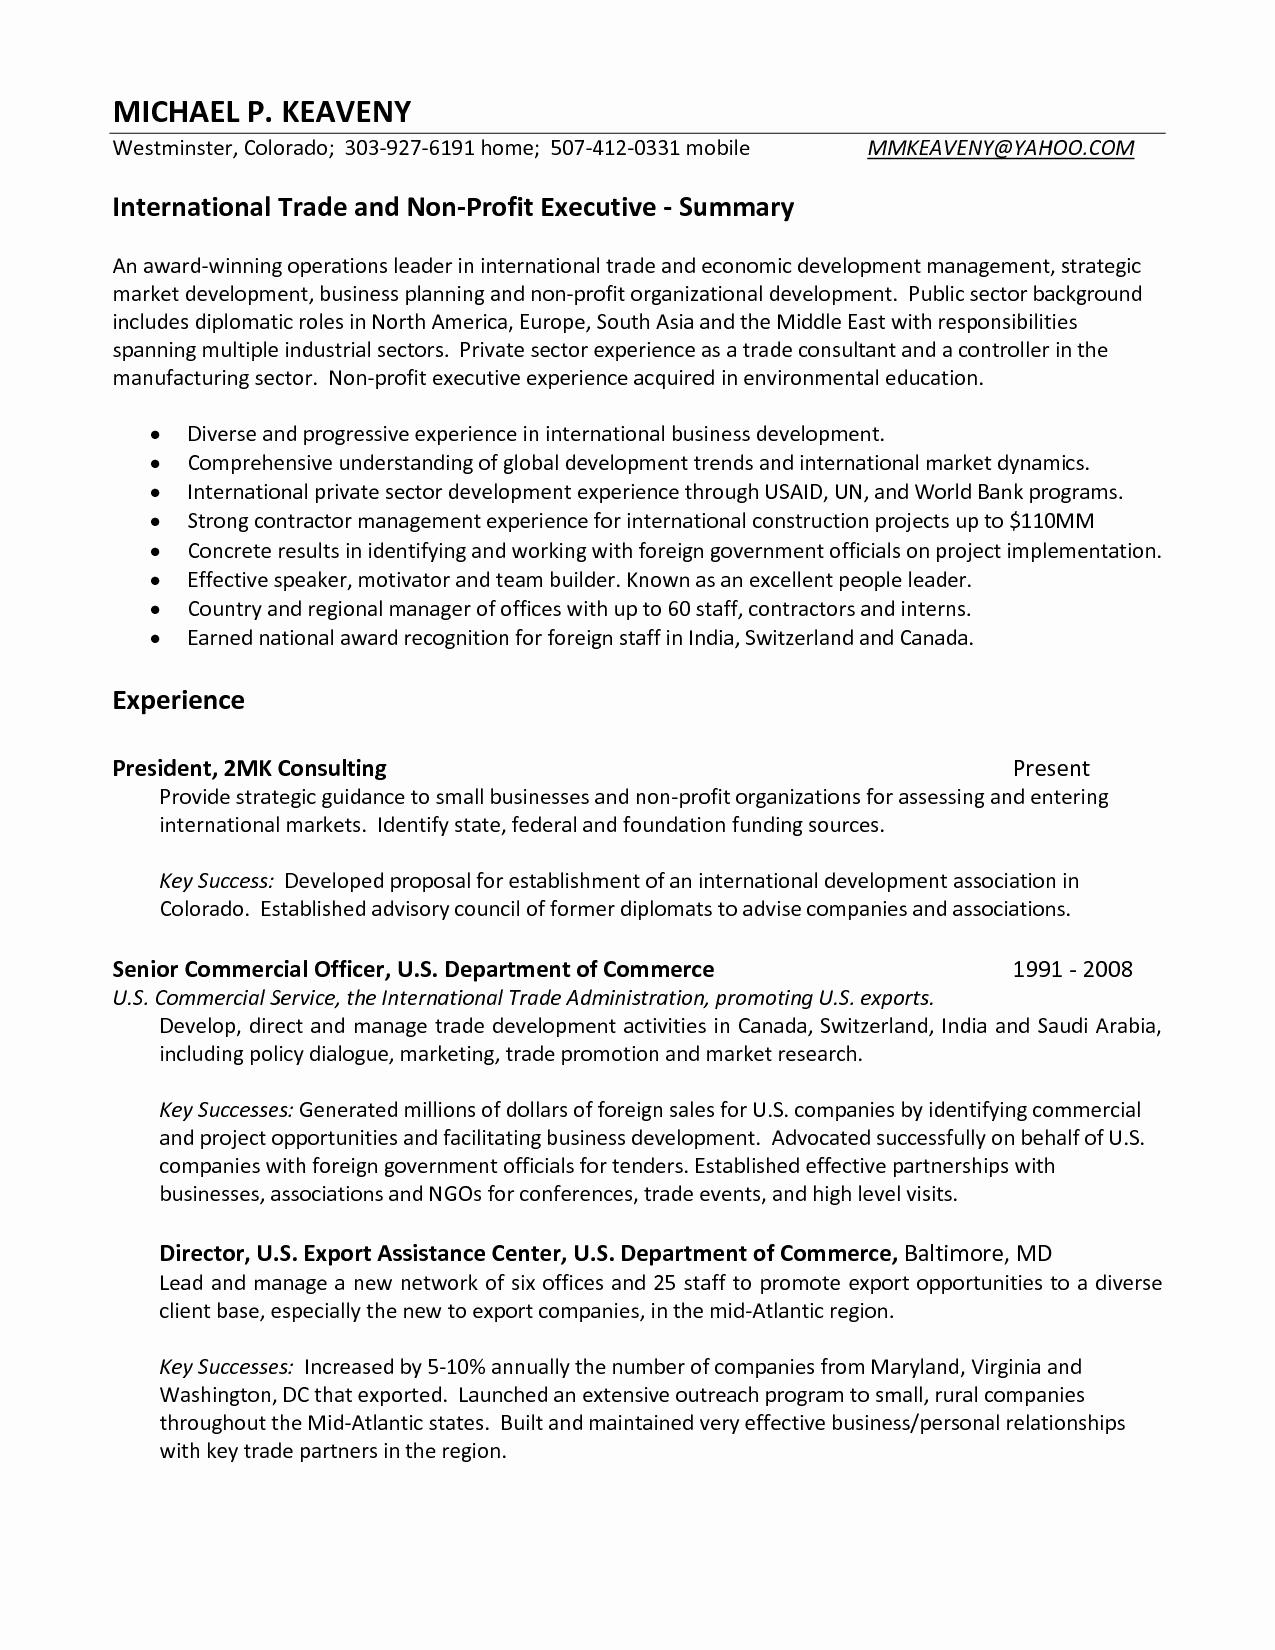 Resume Background Summary - Business Resume Examples Fresh Resume or Cv Unique American Resume